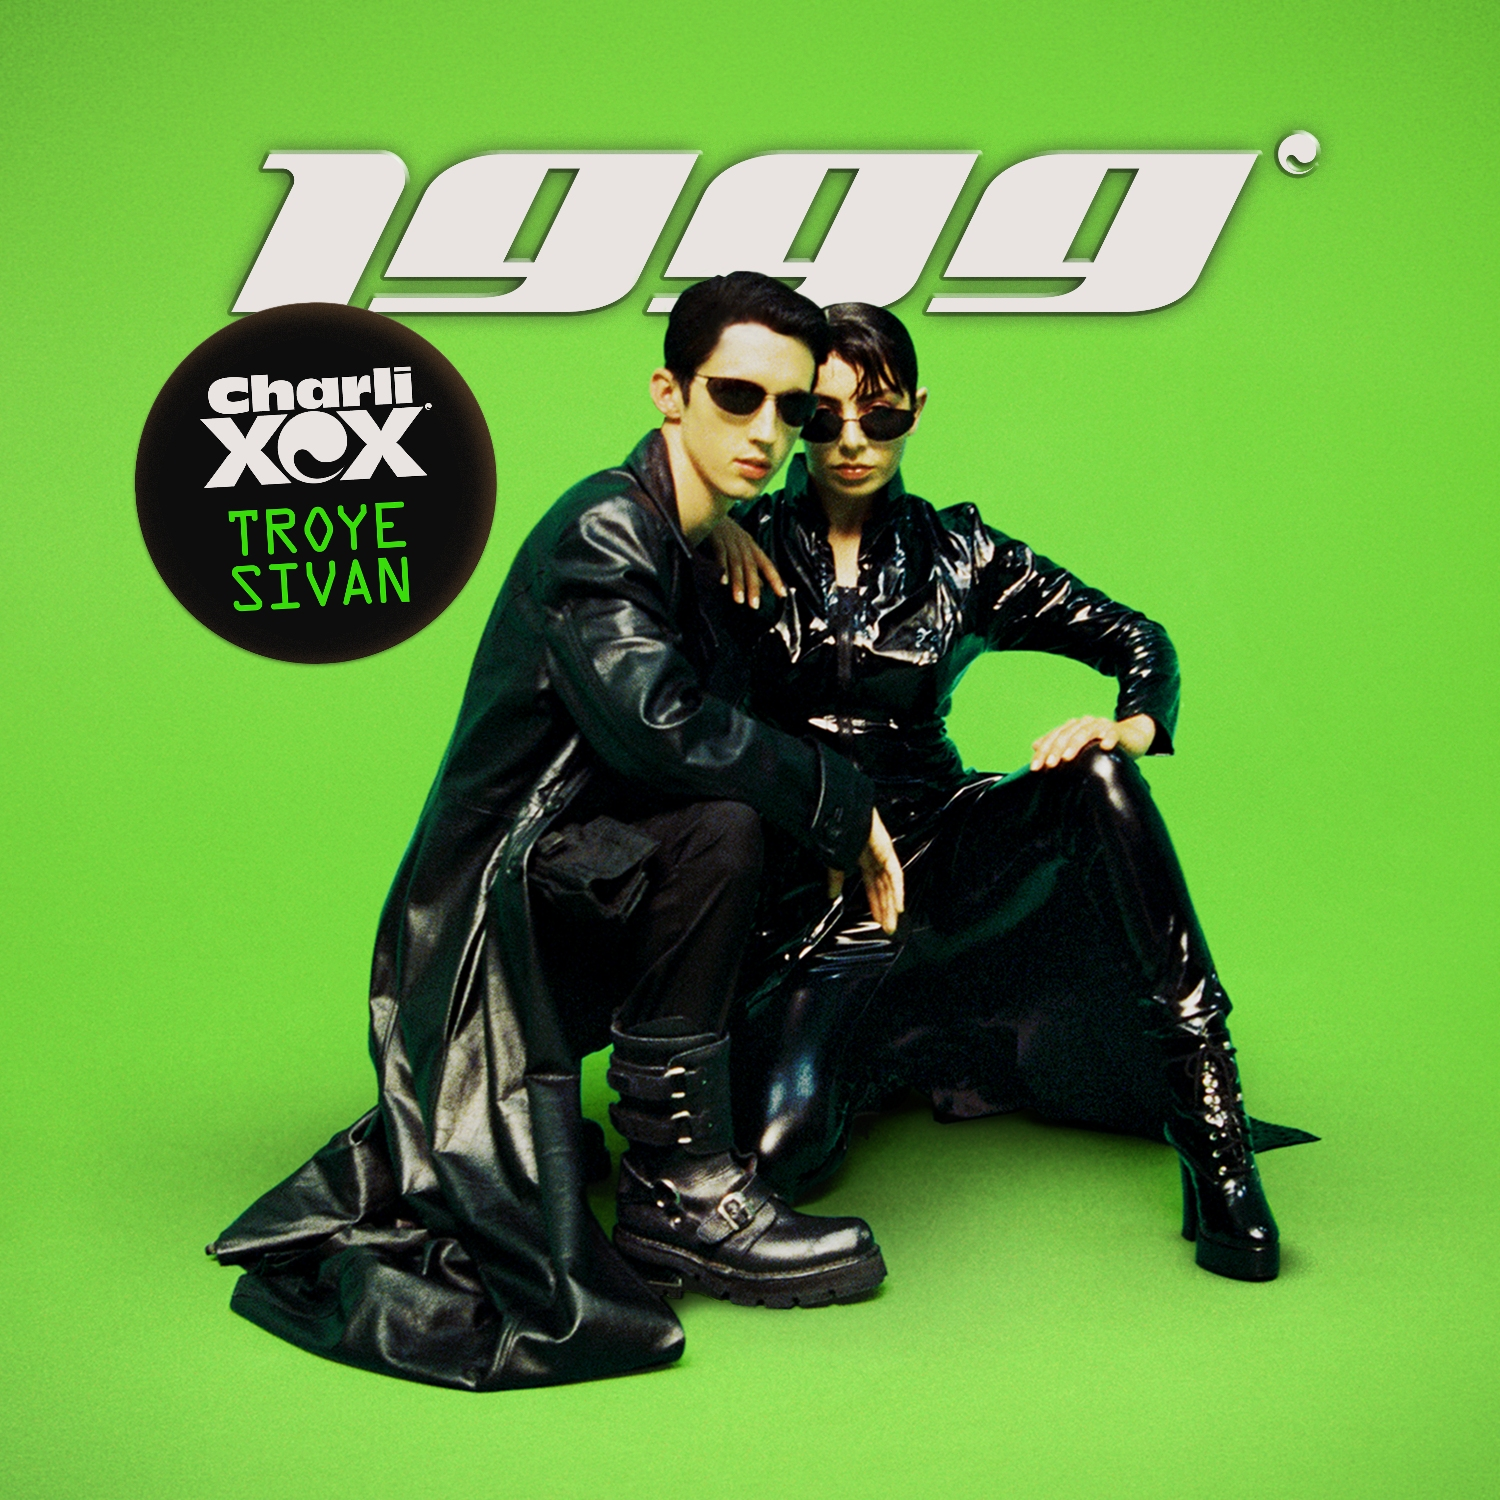 Charli XCX & Troye Sivan - 1999 [Official Audio]